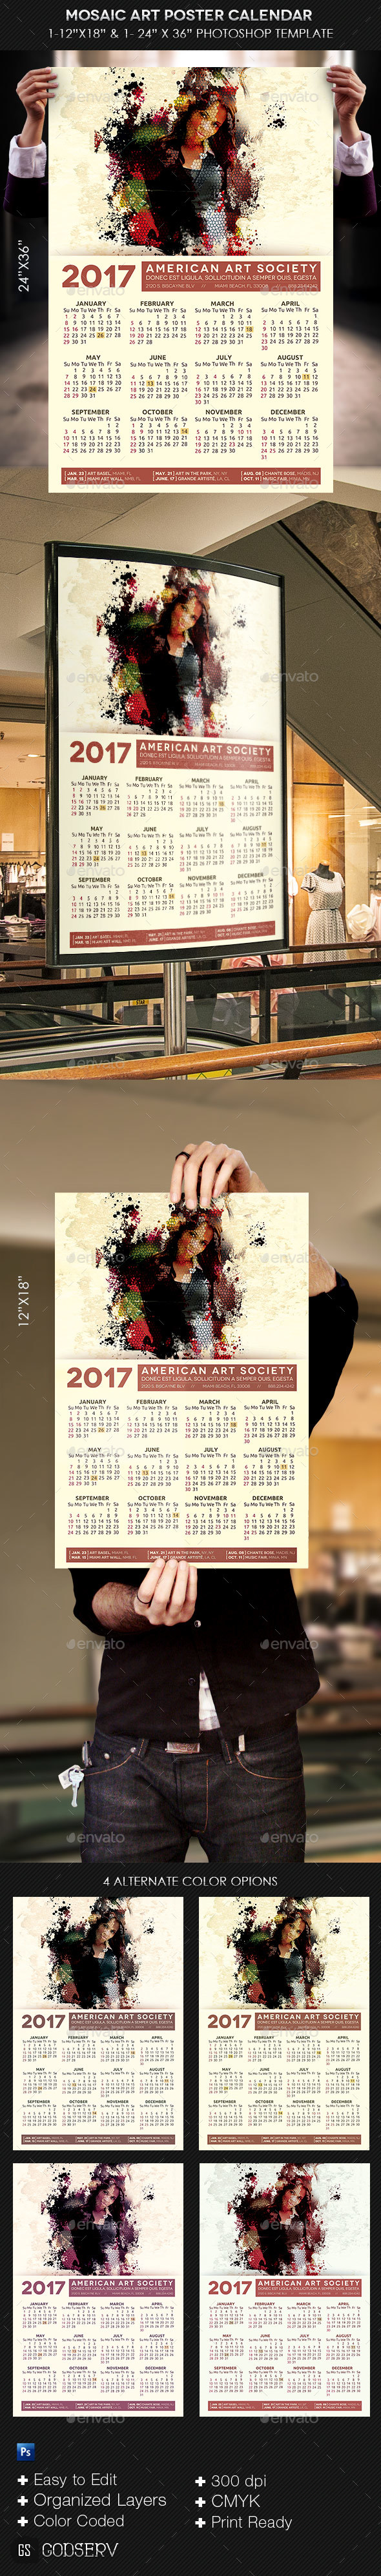 Mosaic Art Poster Calendar Template - Calendars Stationery